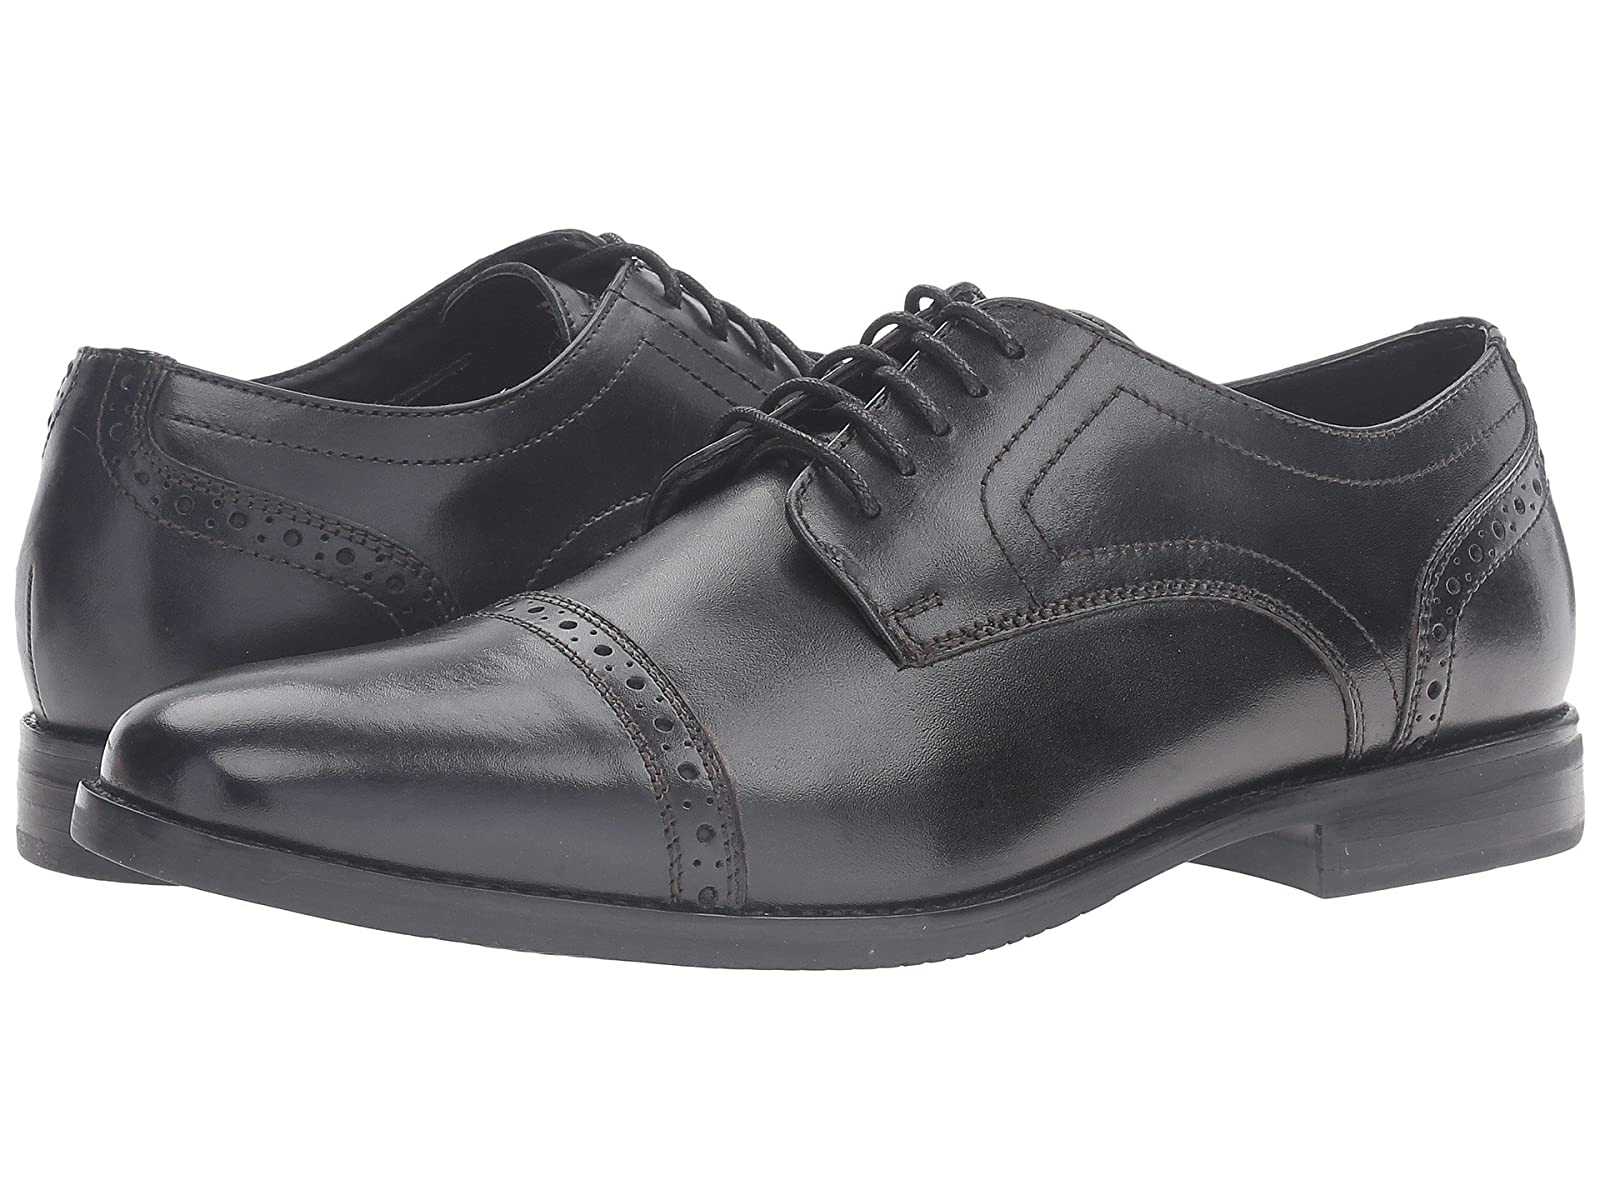 Rockport Style Purpose Cap ToeAtmospheric grades have affordable shoes